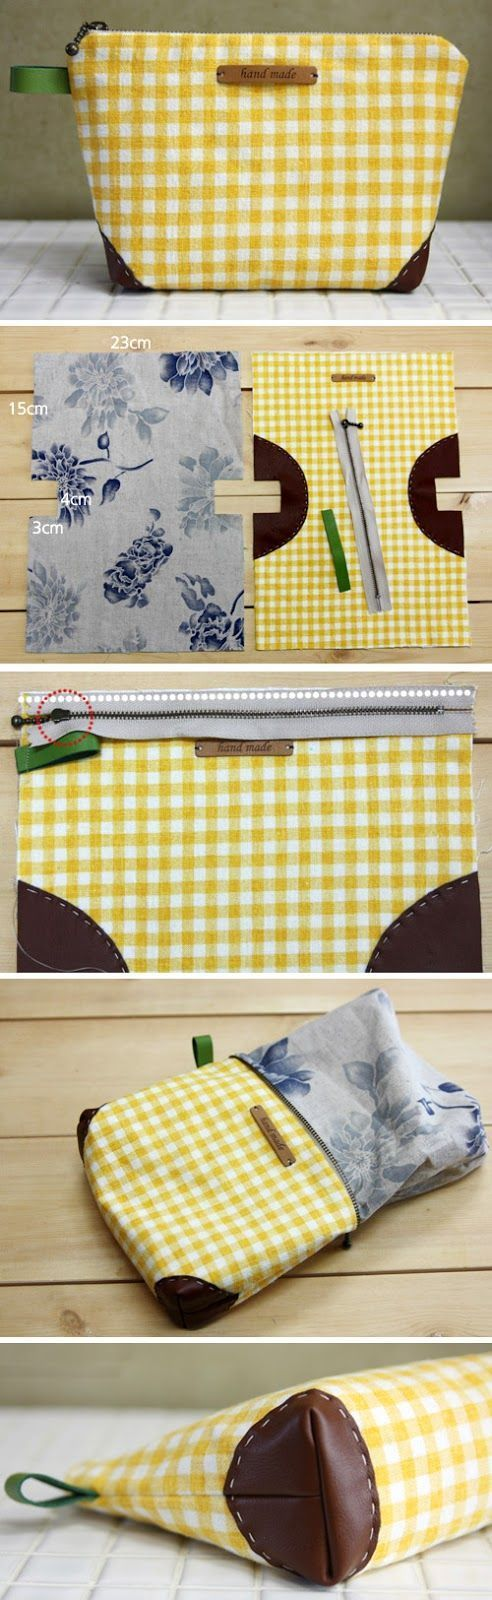 Photo of Easy Zippered Cosmetics Bag Pattern + DIY Tutorial in Pictures. www.handmadiya.c…